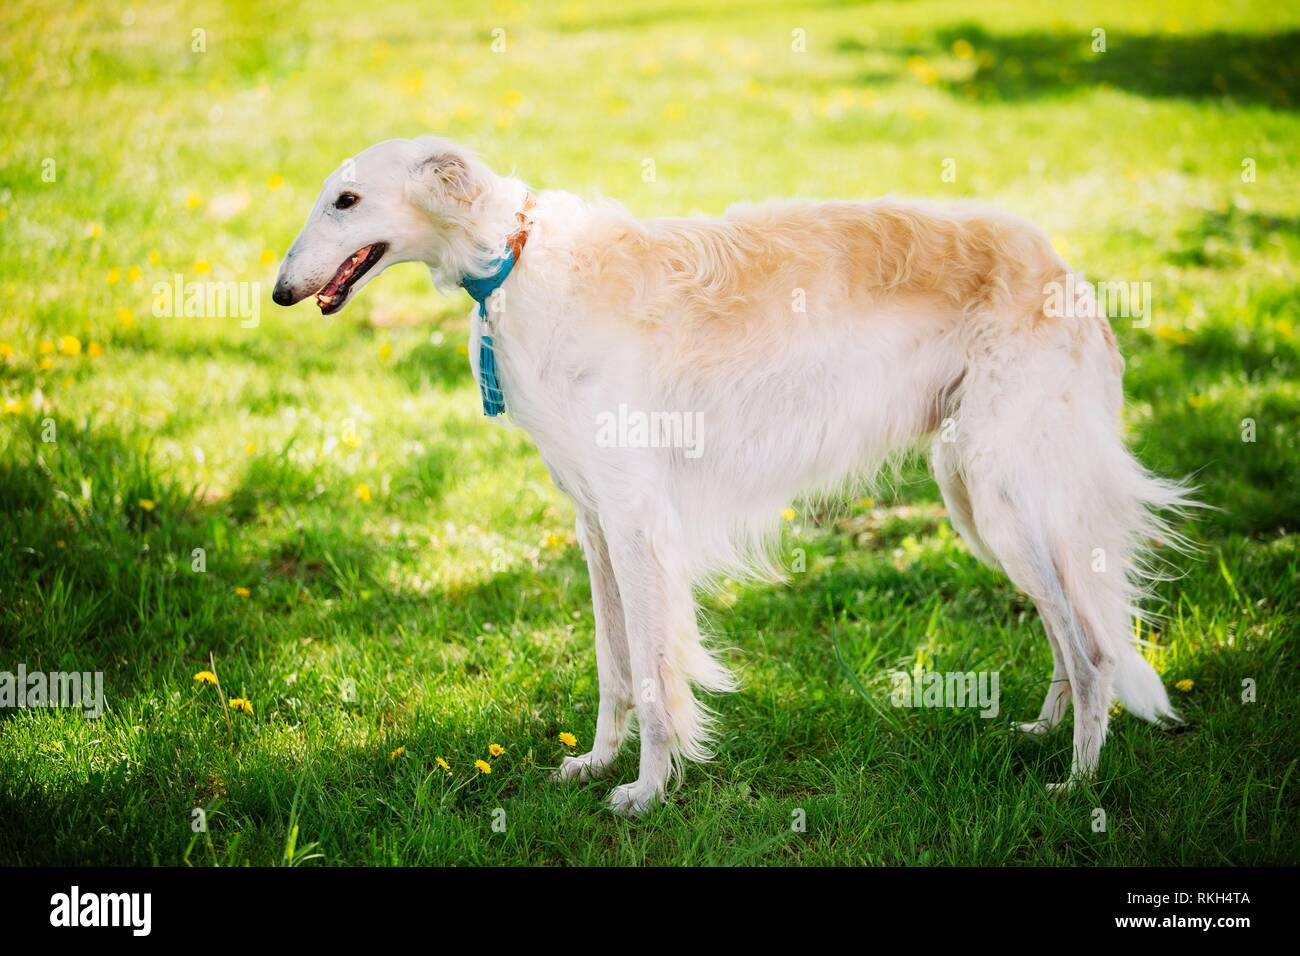 White Gazehound Hunting Dog Staying Outdoor In Summer Meadow Green Grass. Stock Photo